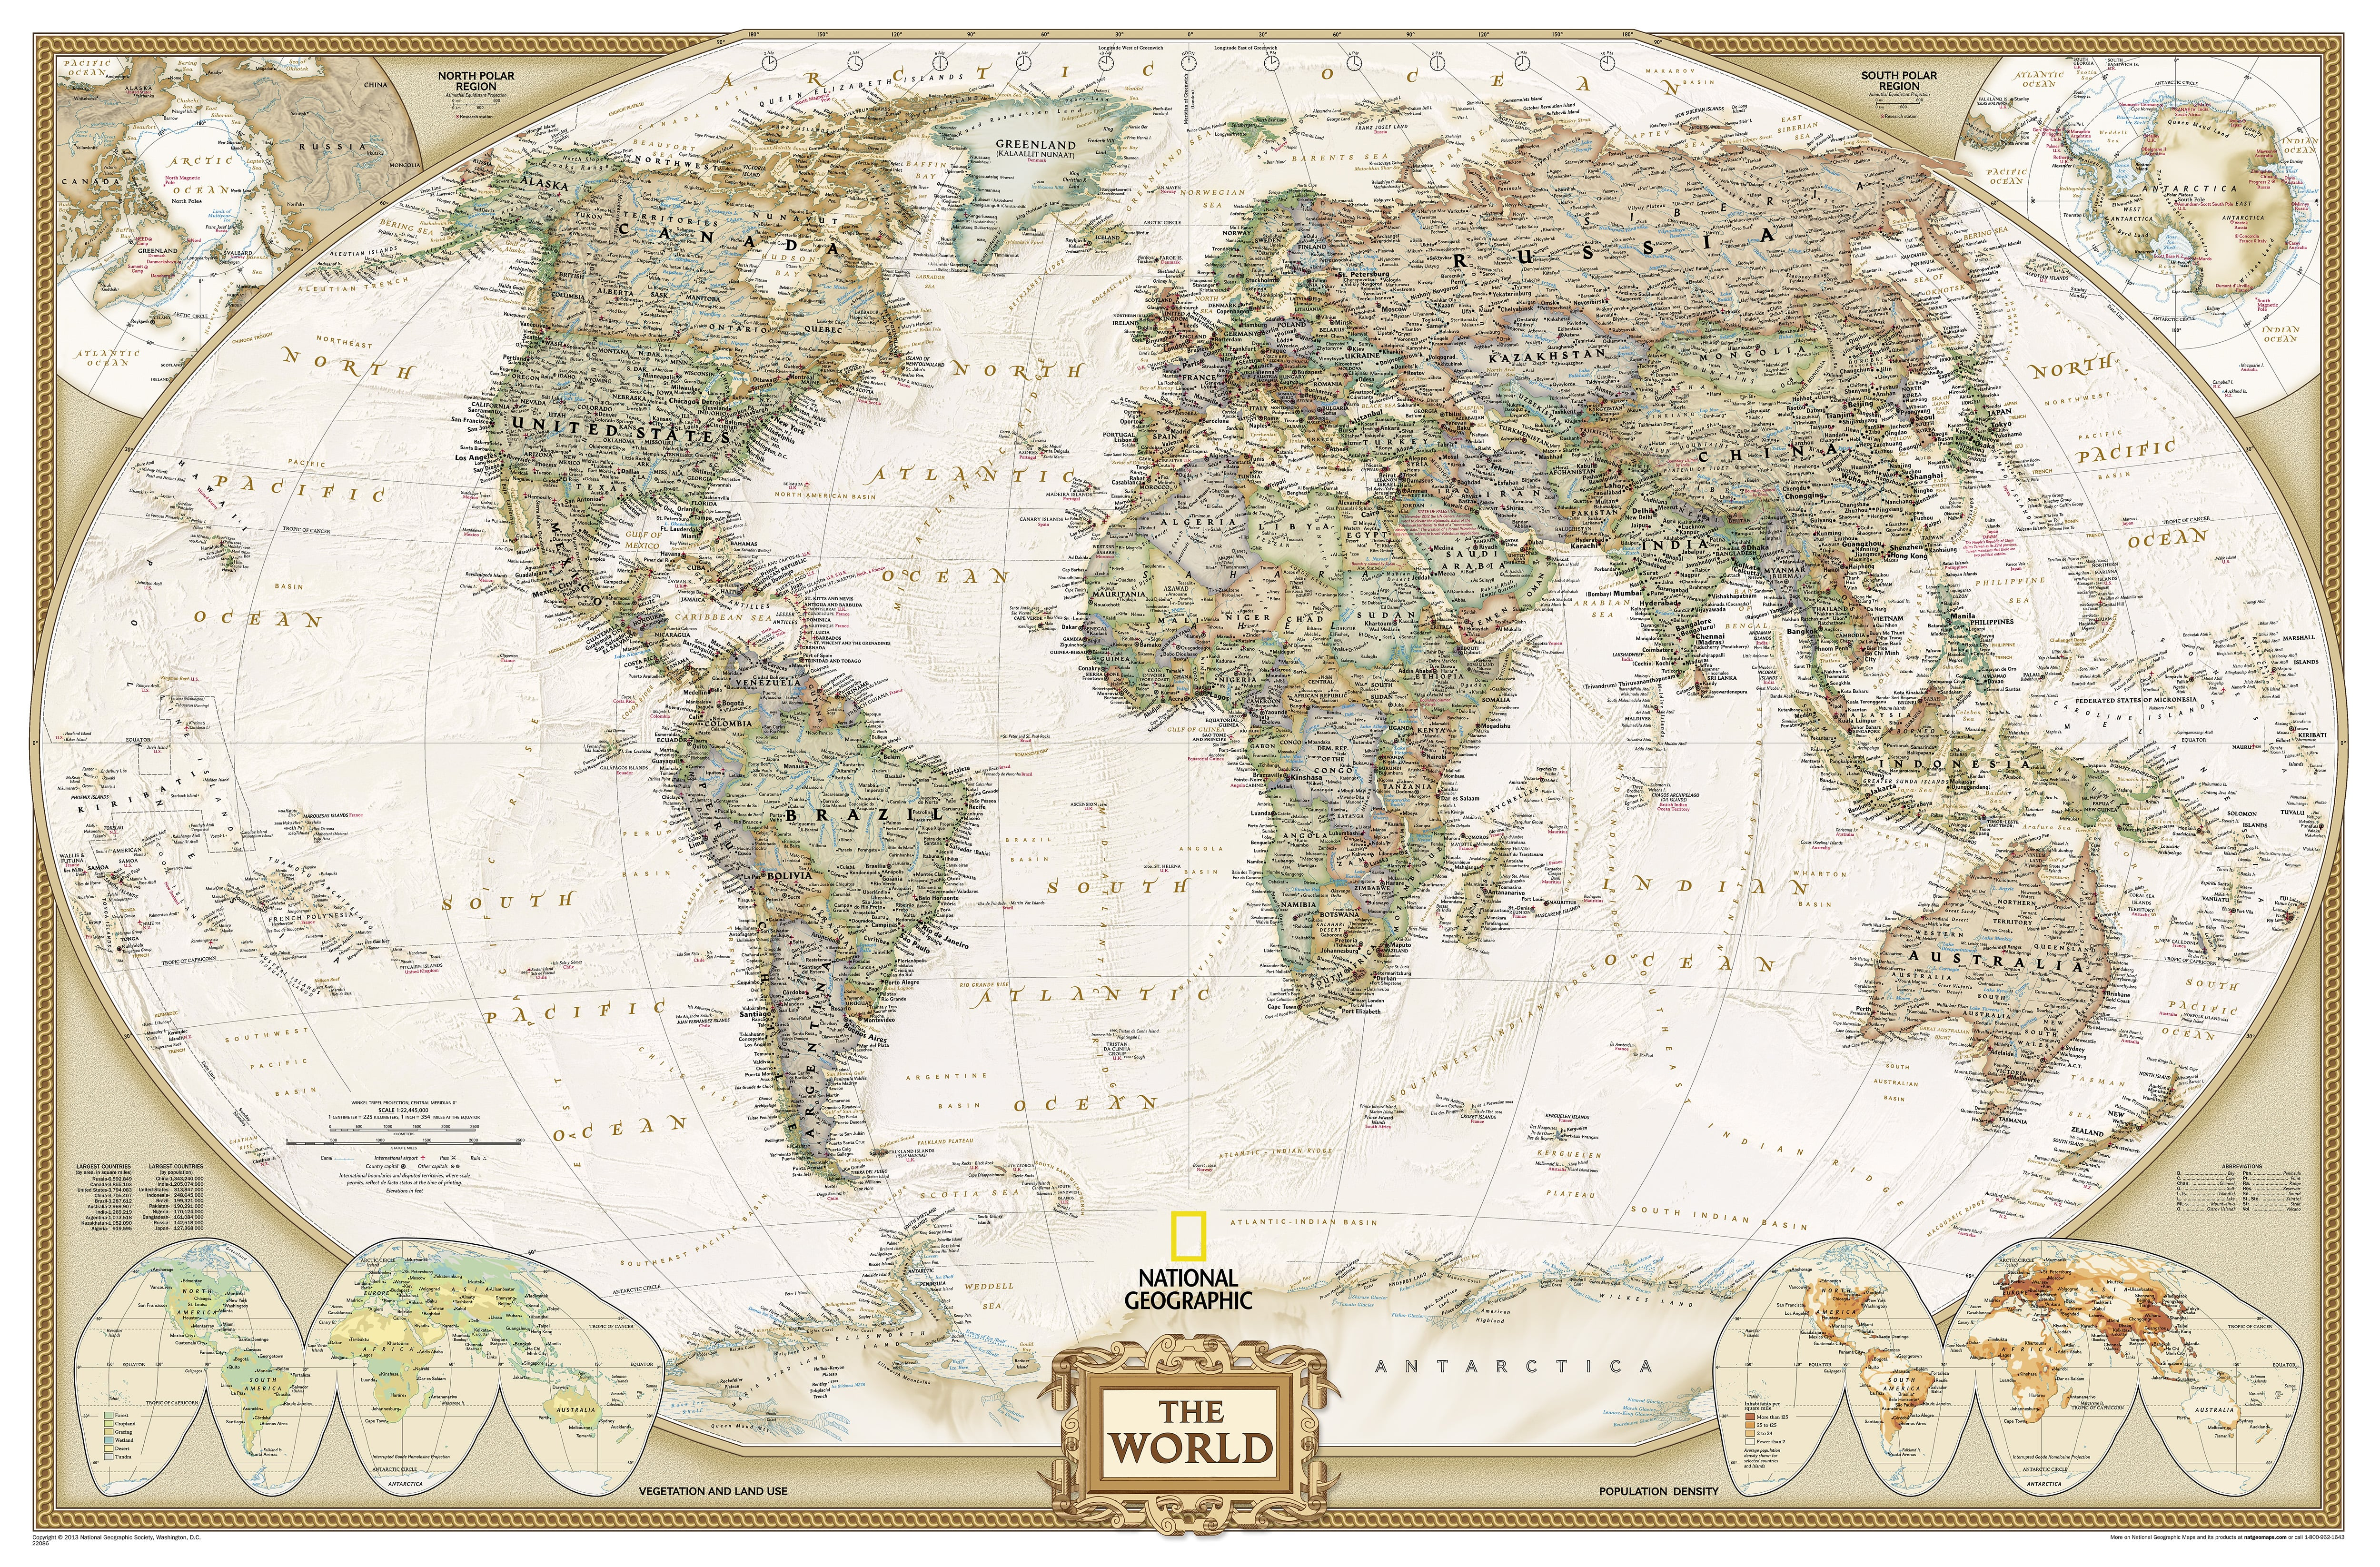 Large size national geographic world map poster antique tones gumiabroncs Gallery